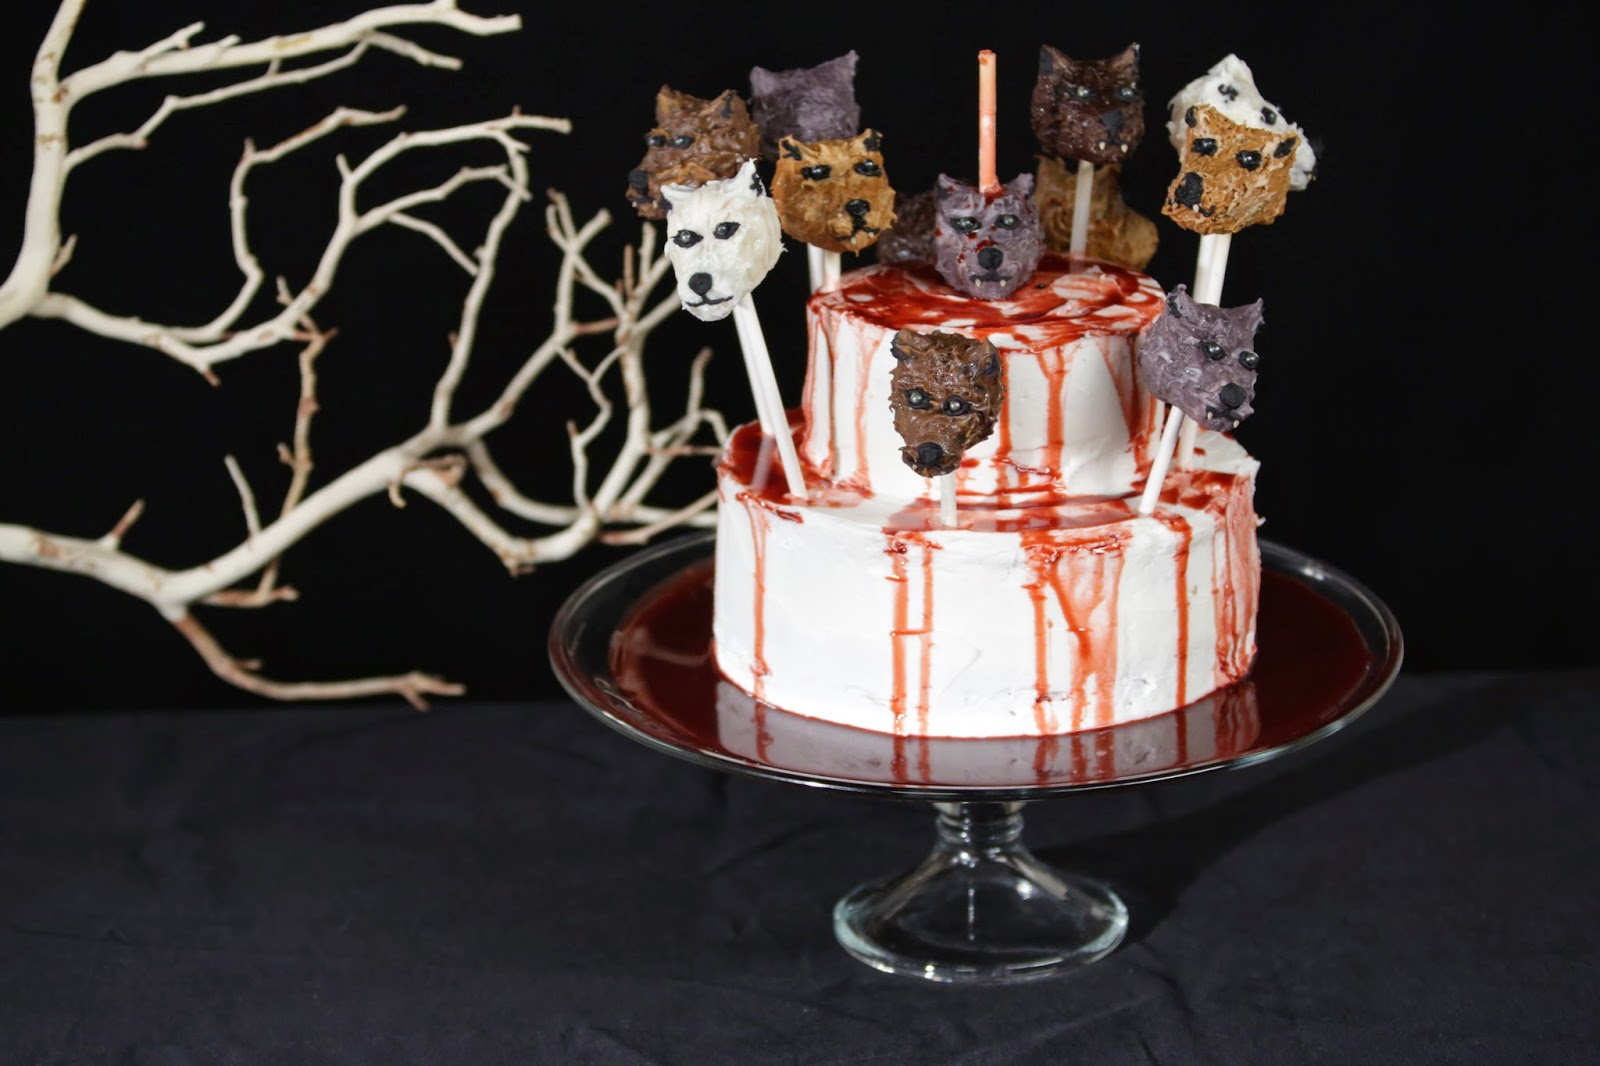 Red Wedding Game of Thrones Cake Direwolves Cake Pops